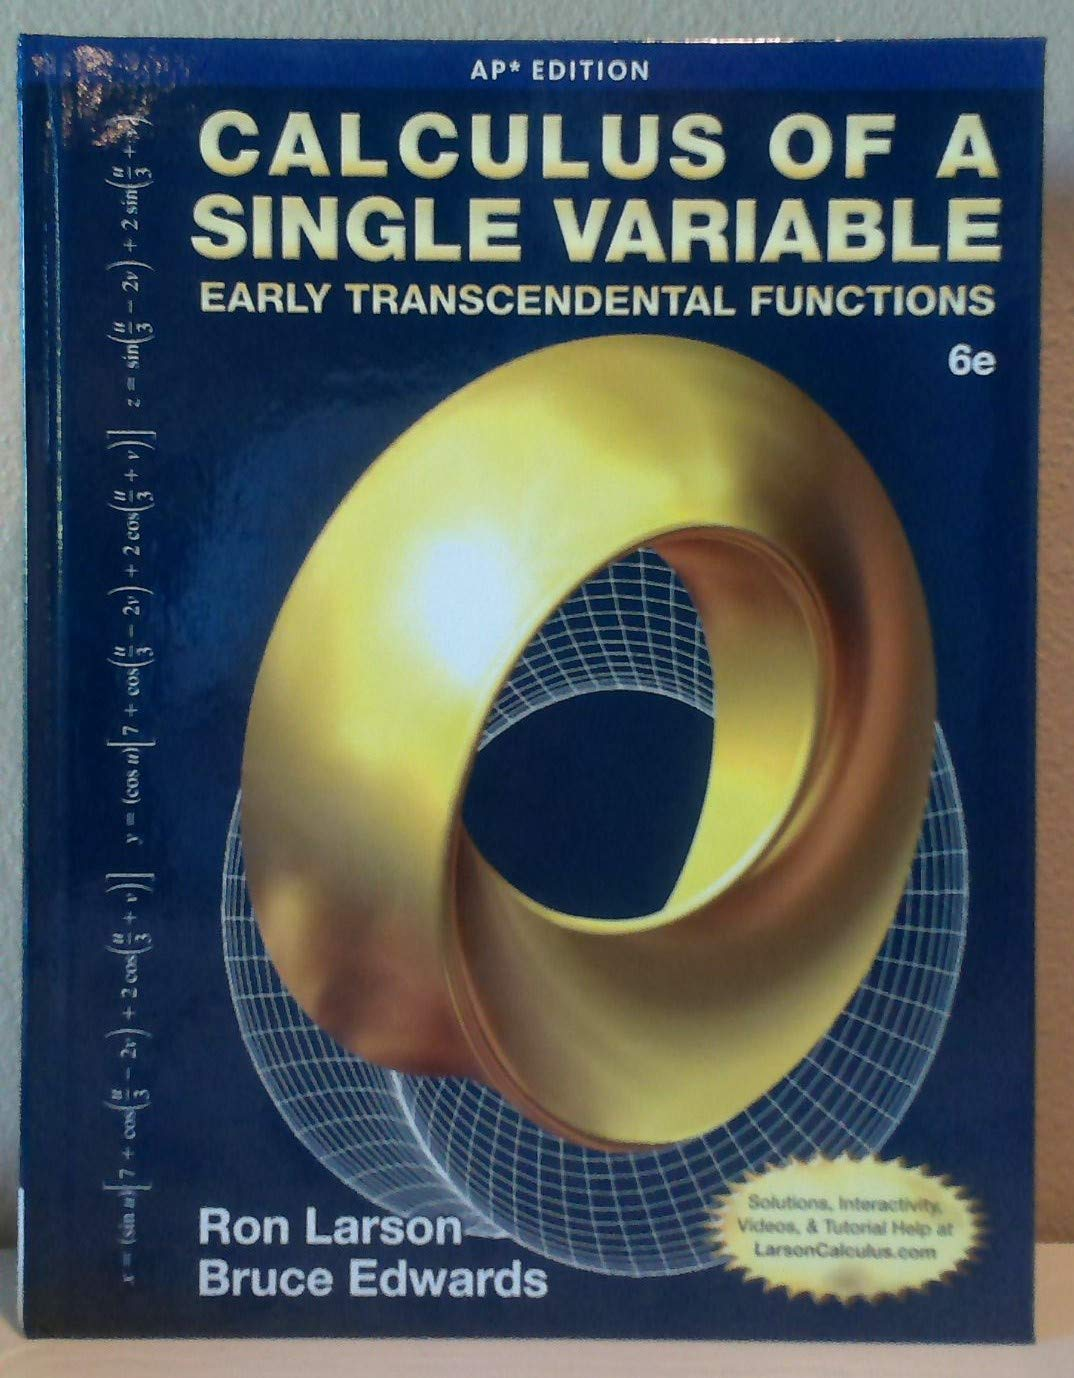 Calculus of a Single Variable: Early Transcendental Functions (AP* Edition),  6e: Ron Larson and Bruce Edwards: 9781285775913: Amazon.com: Books